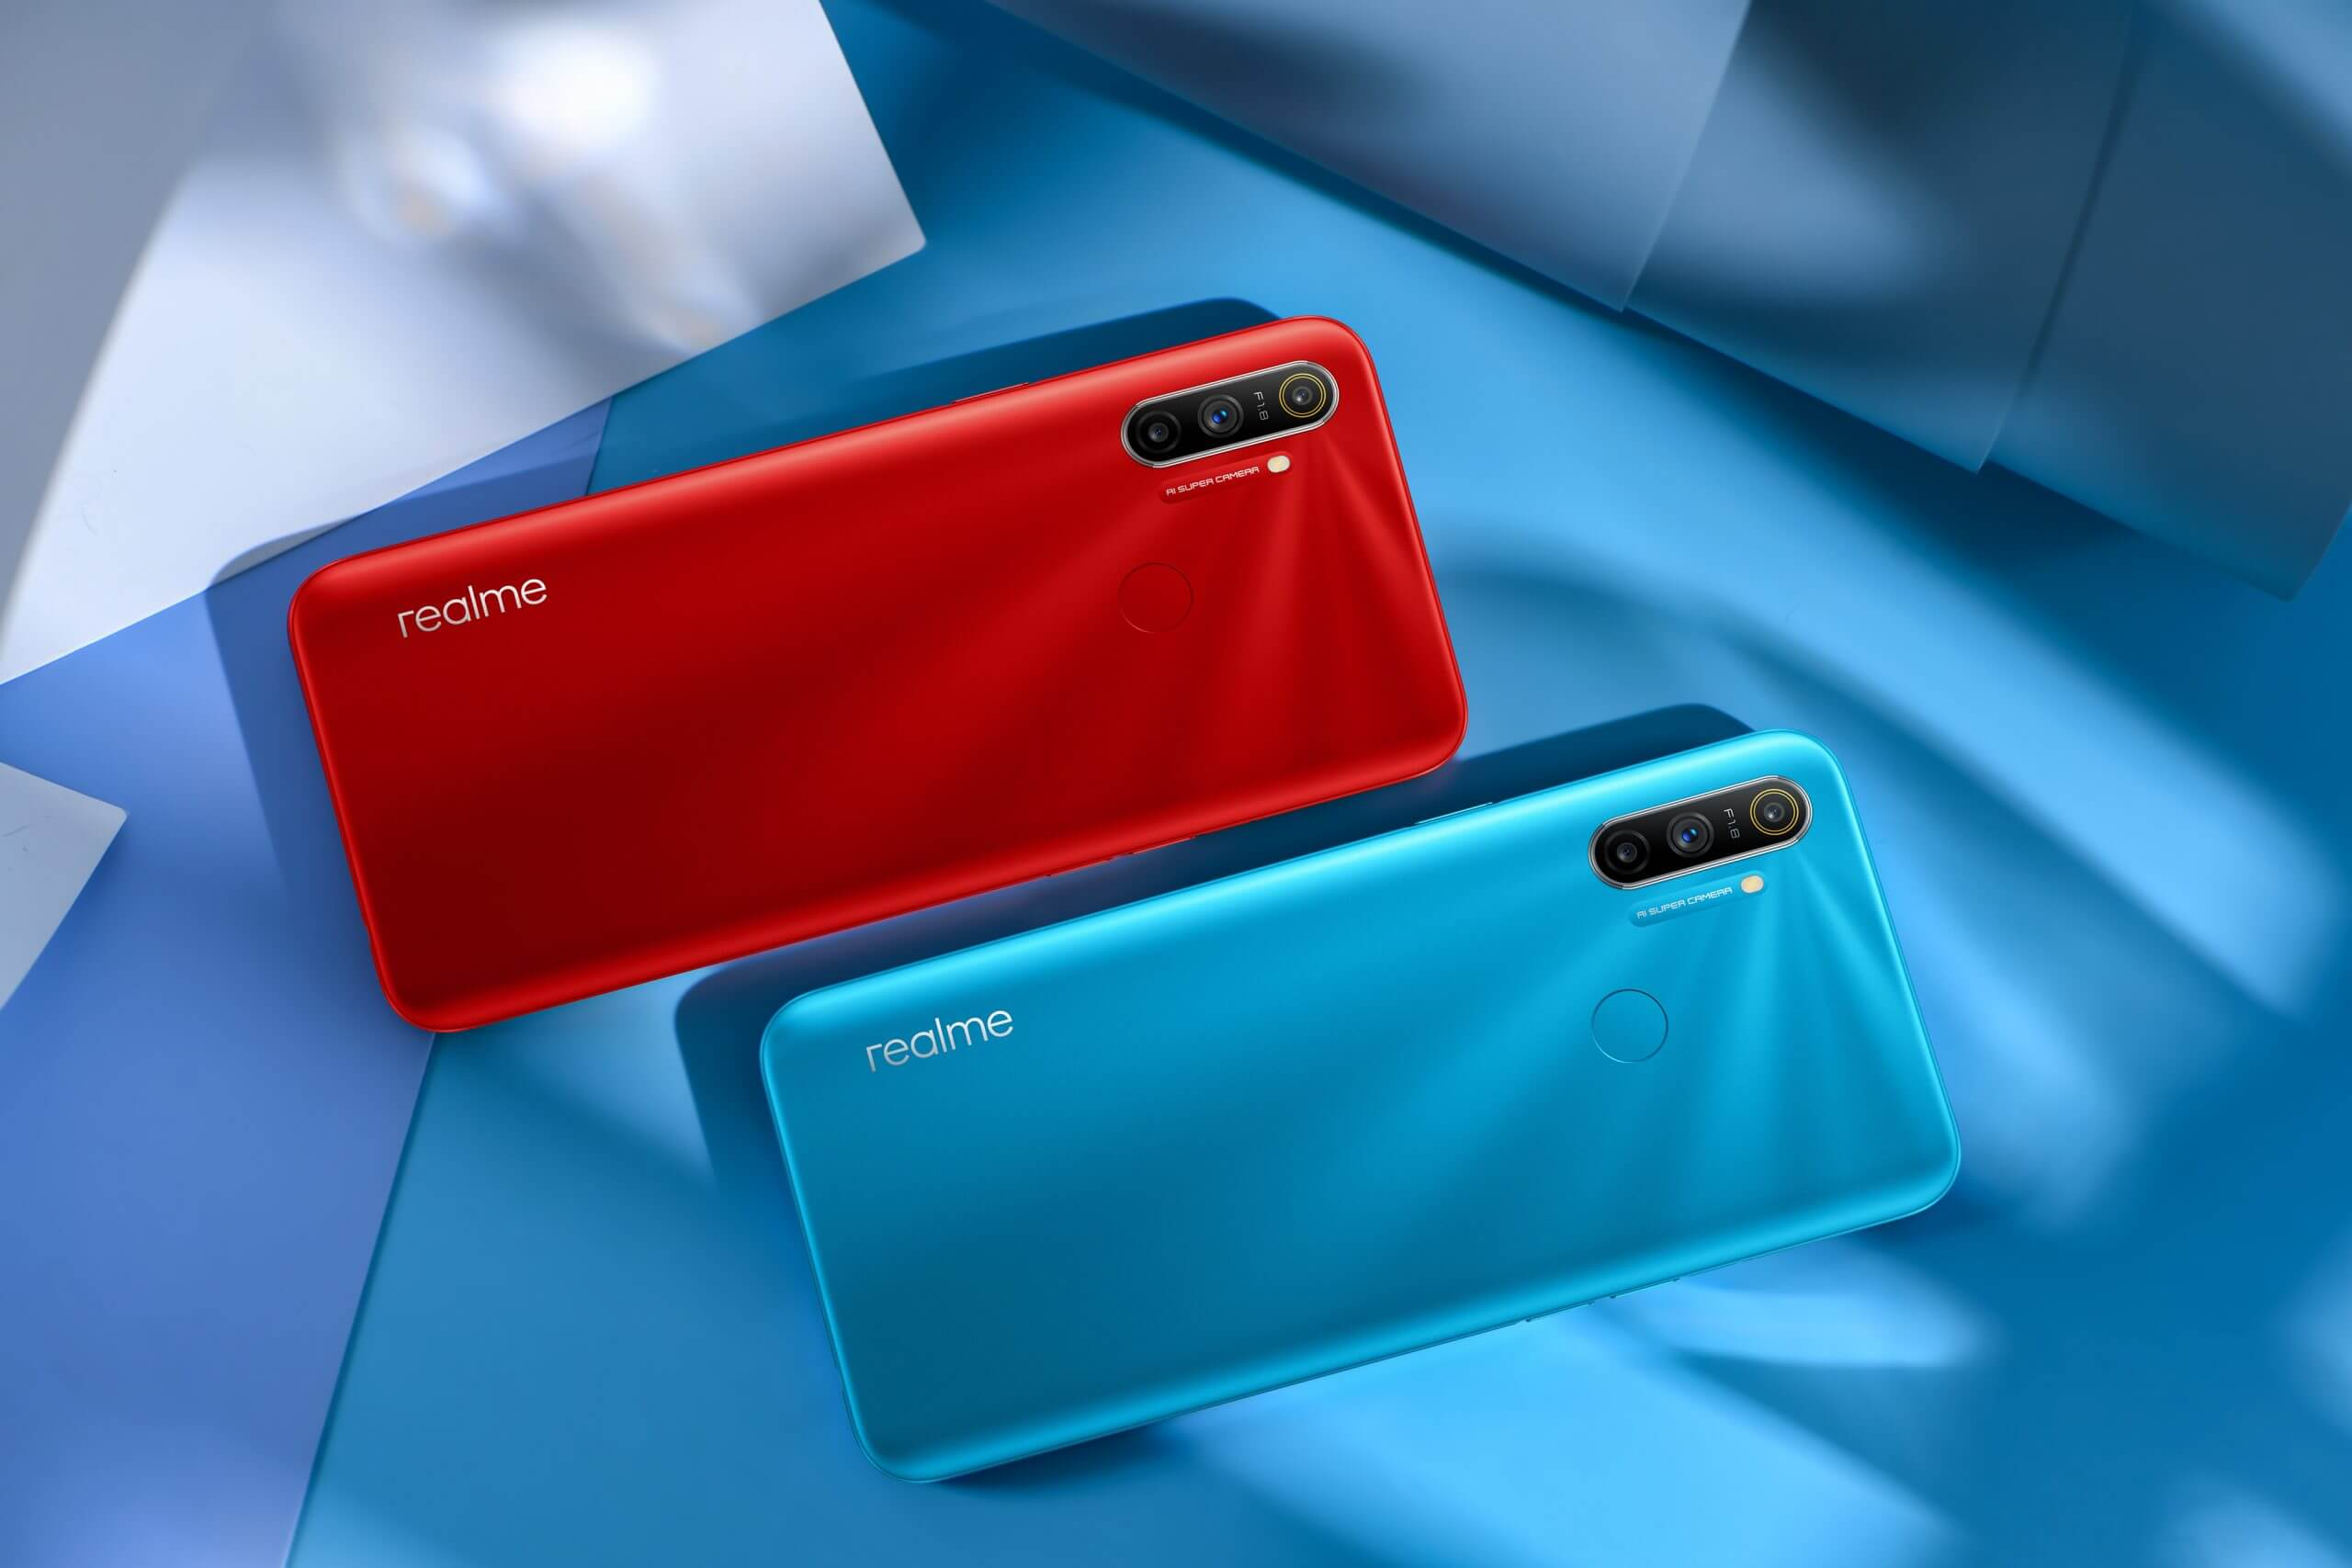 Realme C3 September 2020 Update Released In India Brings August Android Security Patch, Added OTG Switch Toggle, Super Night-time Standby, Smooth Scrolling Feature & More [RMX2020_11_A.41] - Realme Updates